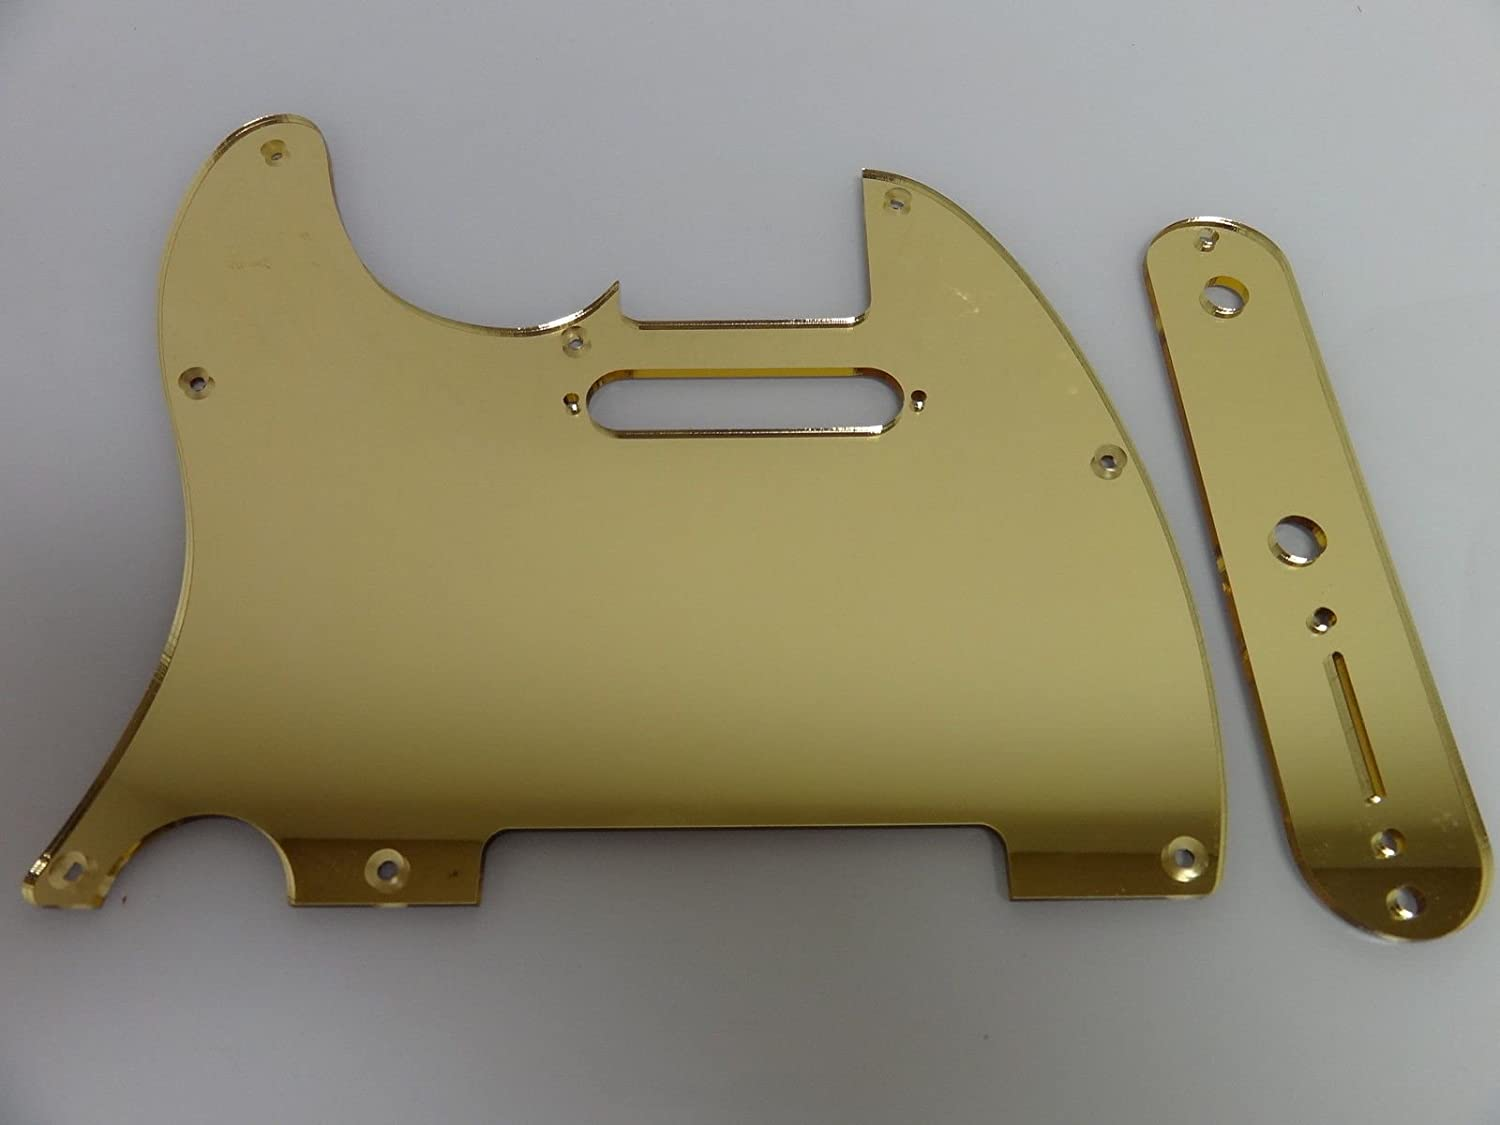 Gold Mirror control plate cover fits Fender Tele Telecaster